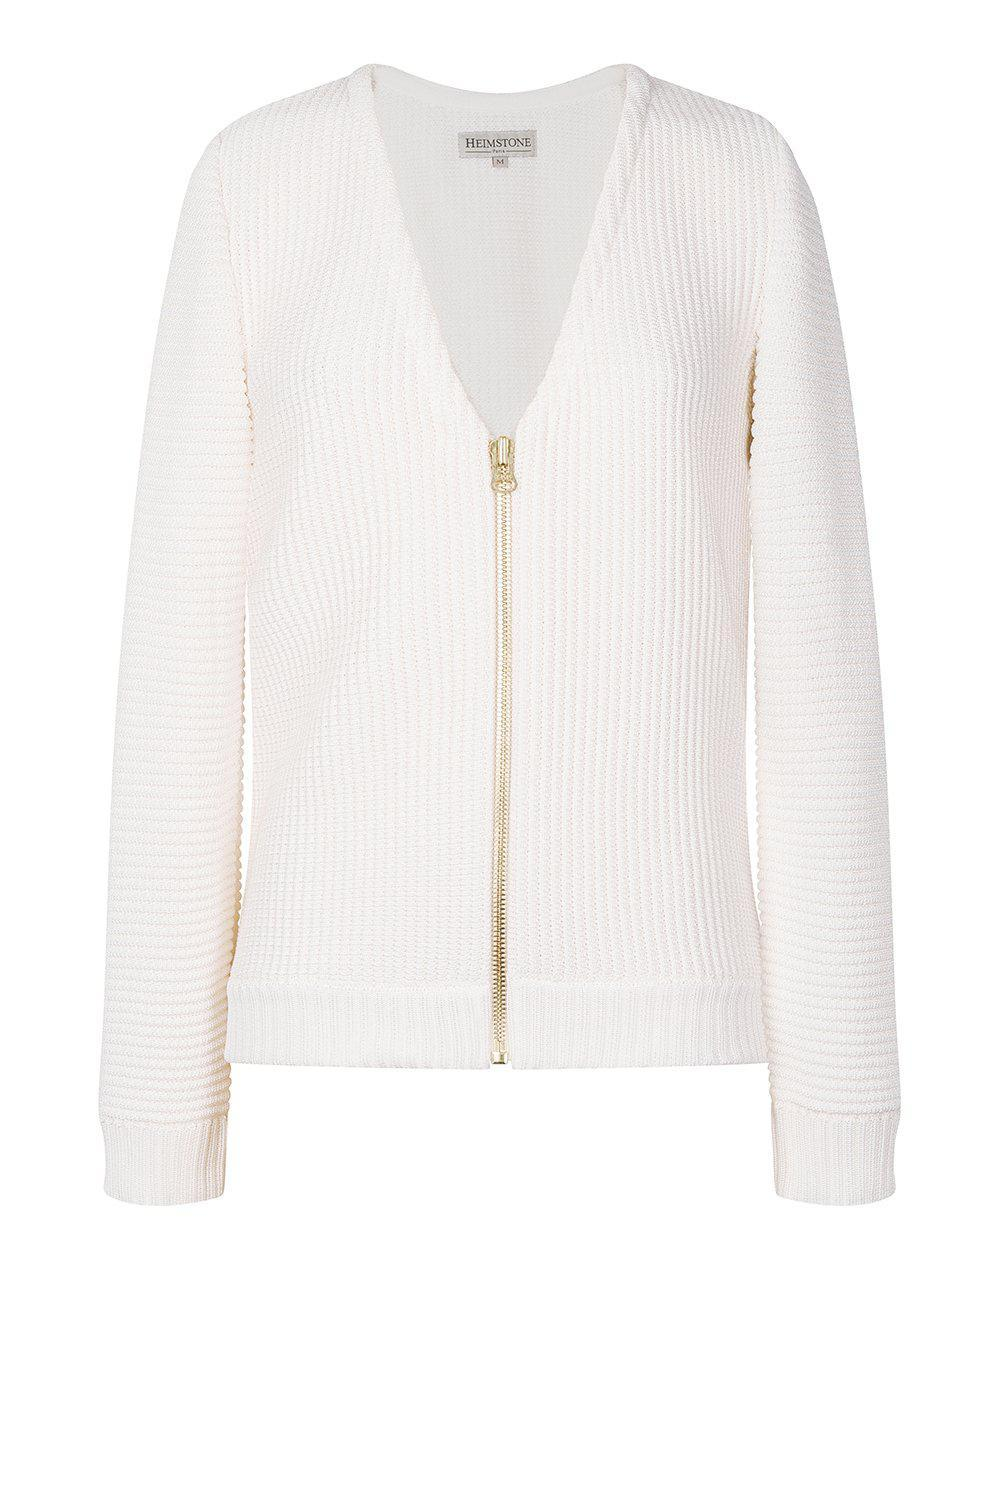 Petite cardigan in white knit